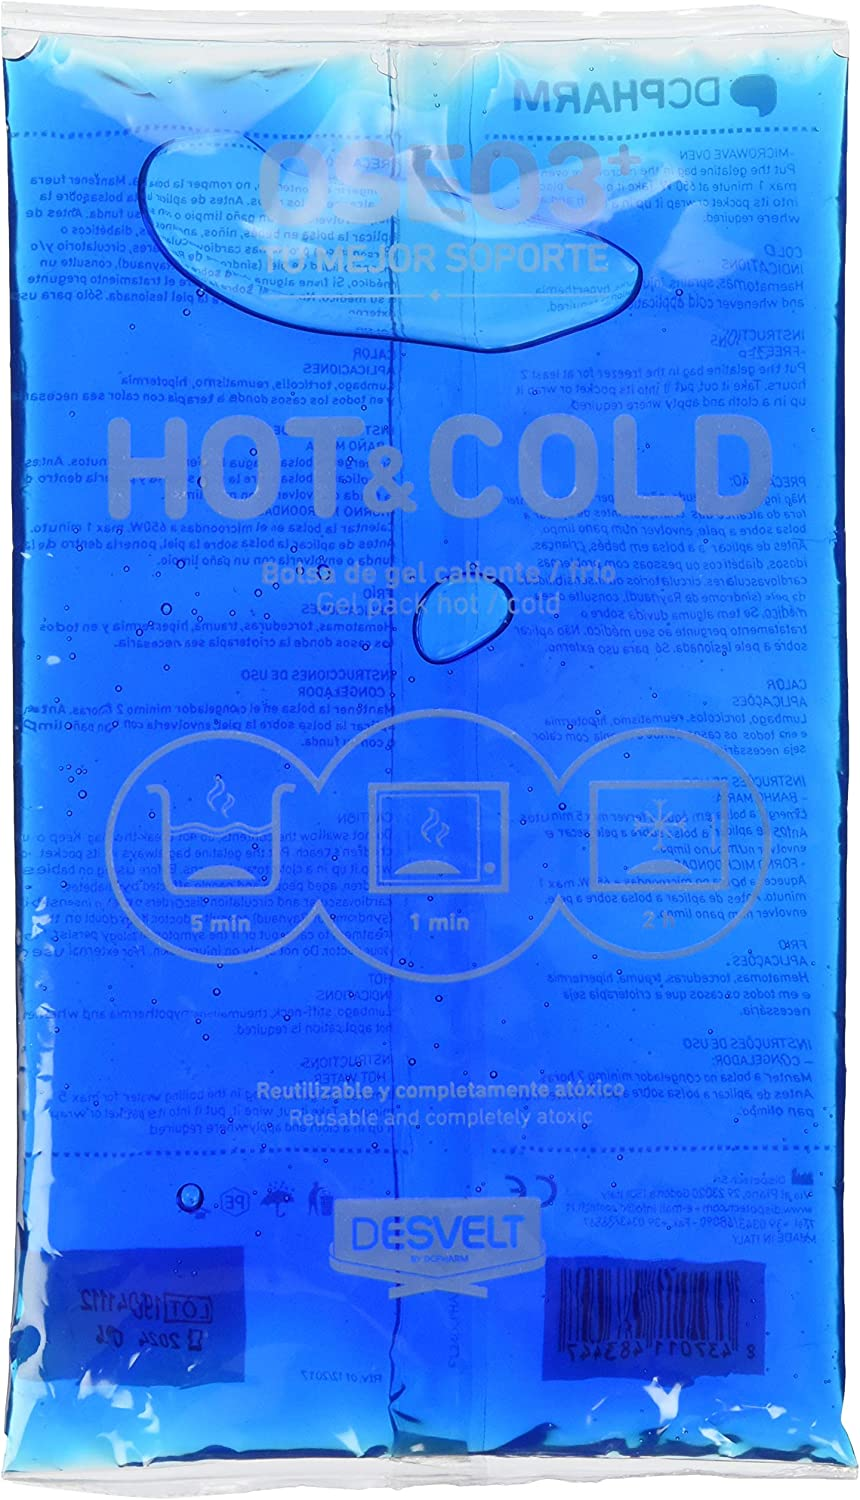 Dderma 52419 - Bolsa gel frio-calor, 140x240 mm: Amazon.es: Bebé